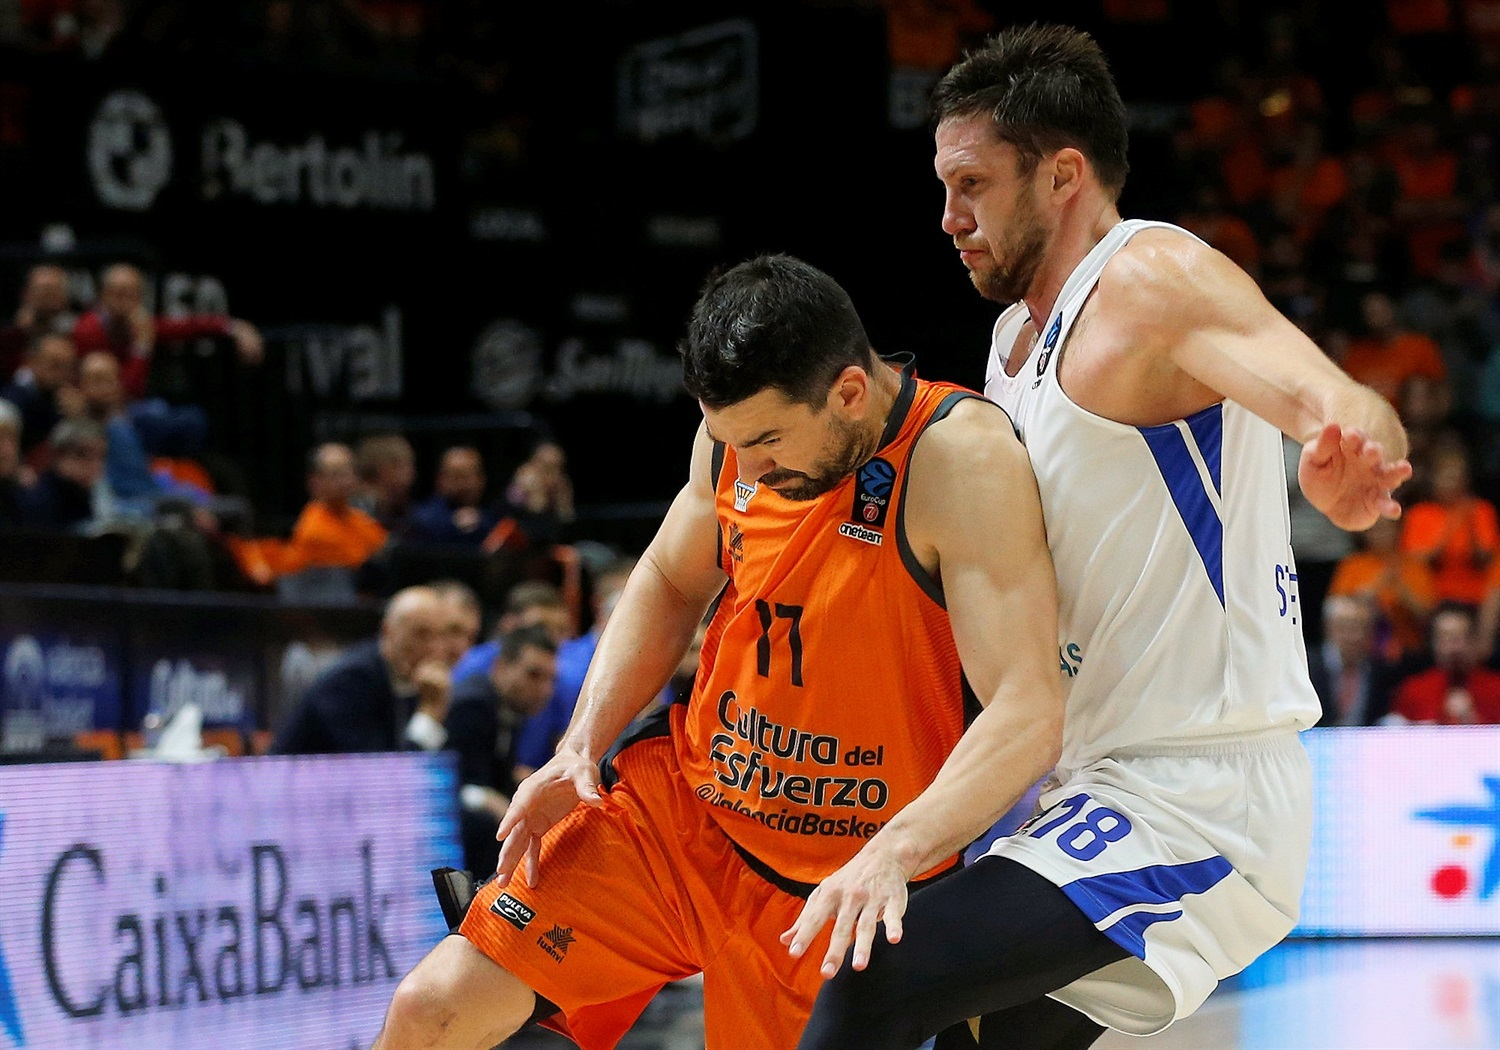 Rafa Martinez - Valencia Basket (photo Valencia) - EC18